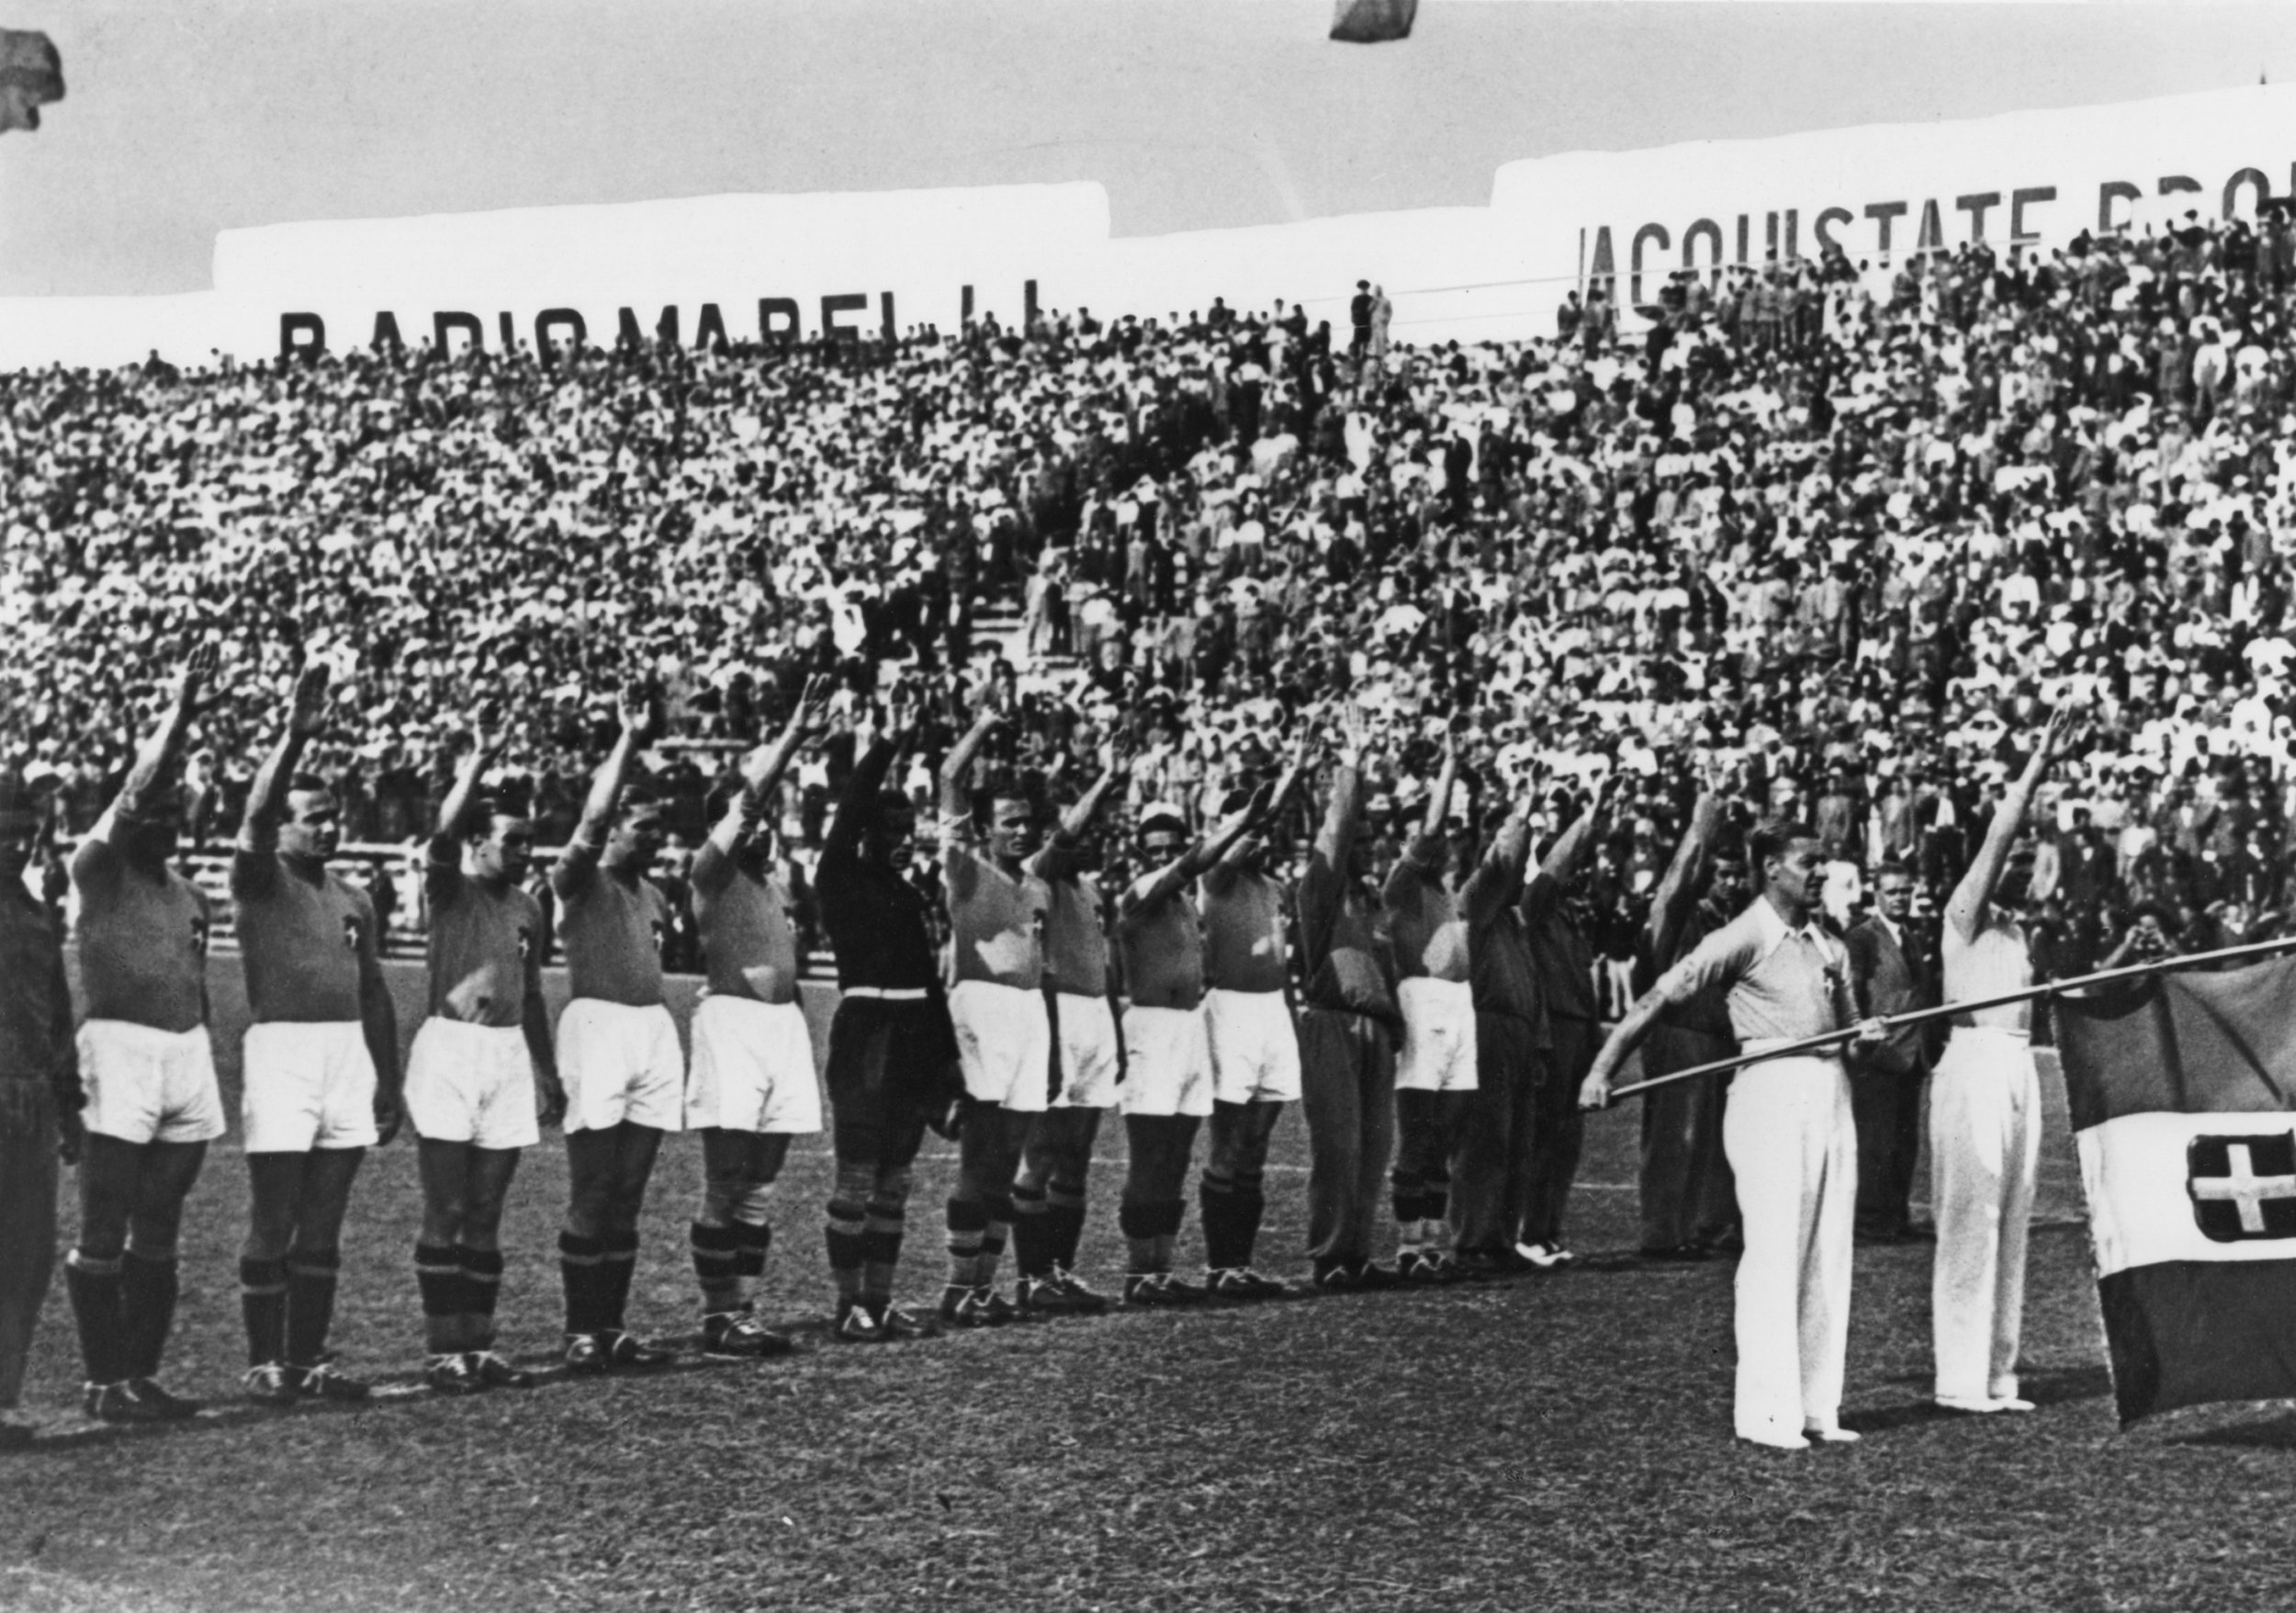 The Italian team performing the fascist salute before the 1934 World Cup Final in Rome, Italy.  Photo by Keystone/Hulton Archive/Getty Images